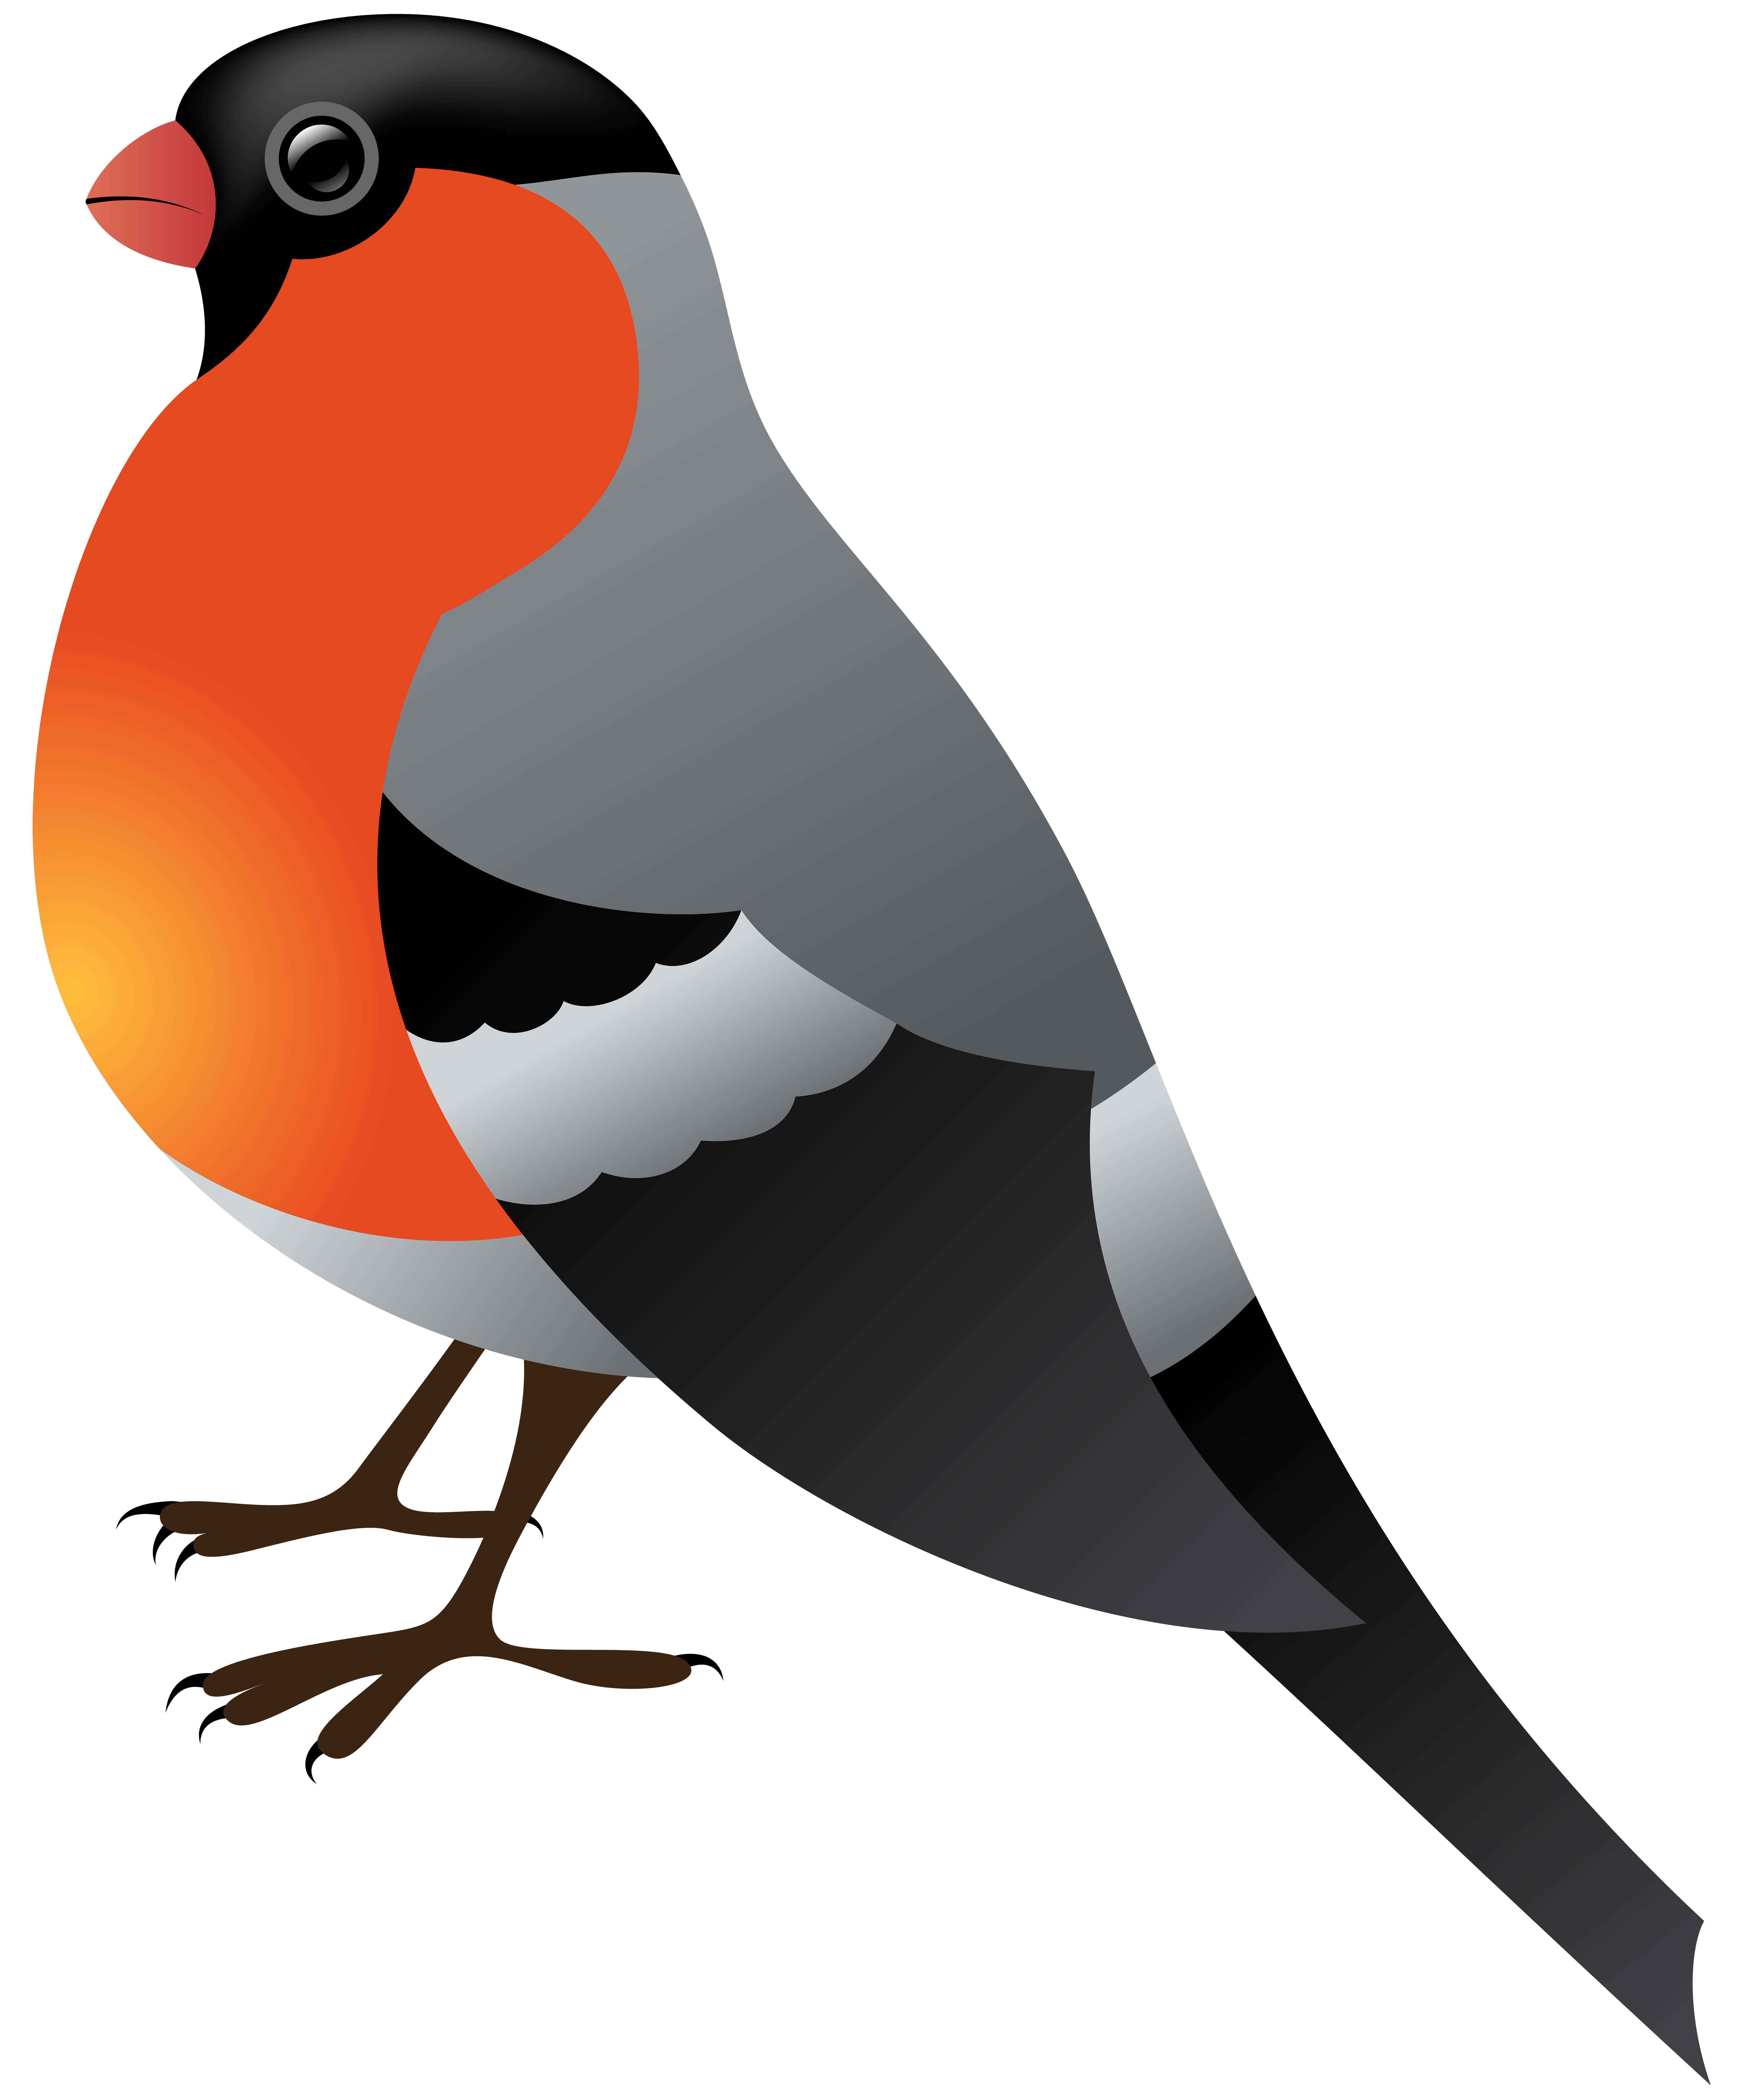 Birds clipart transparent background. Winter bird png clip